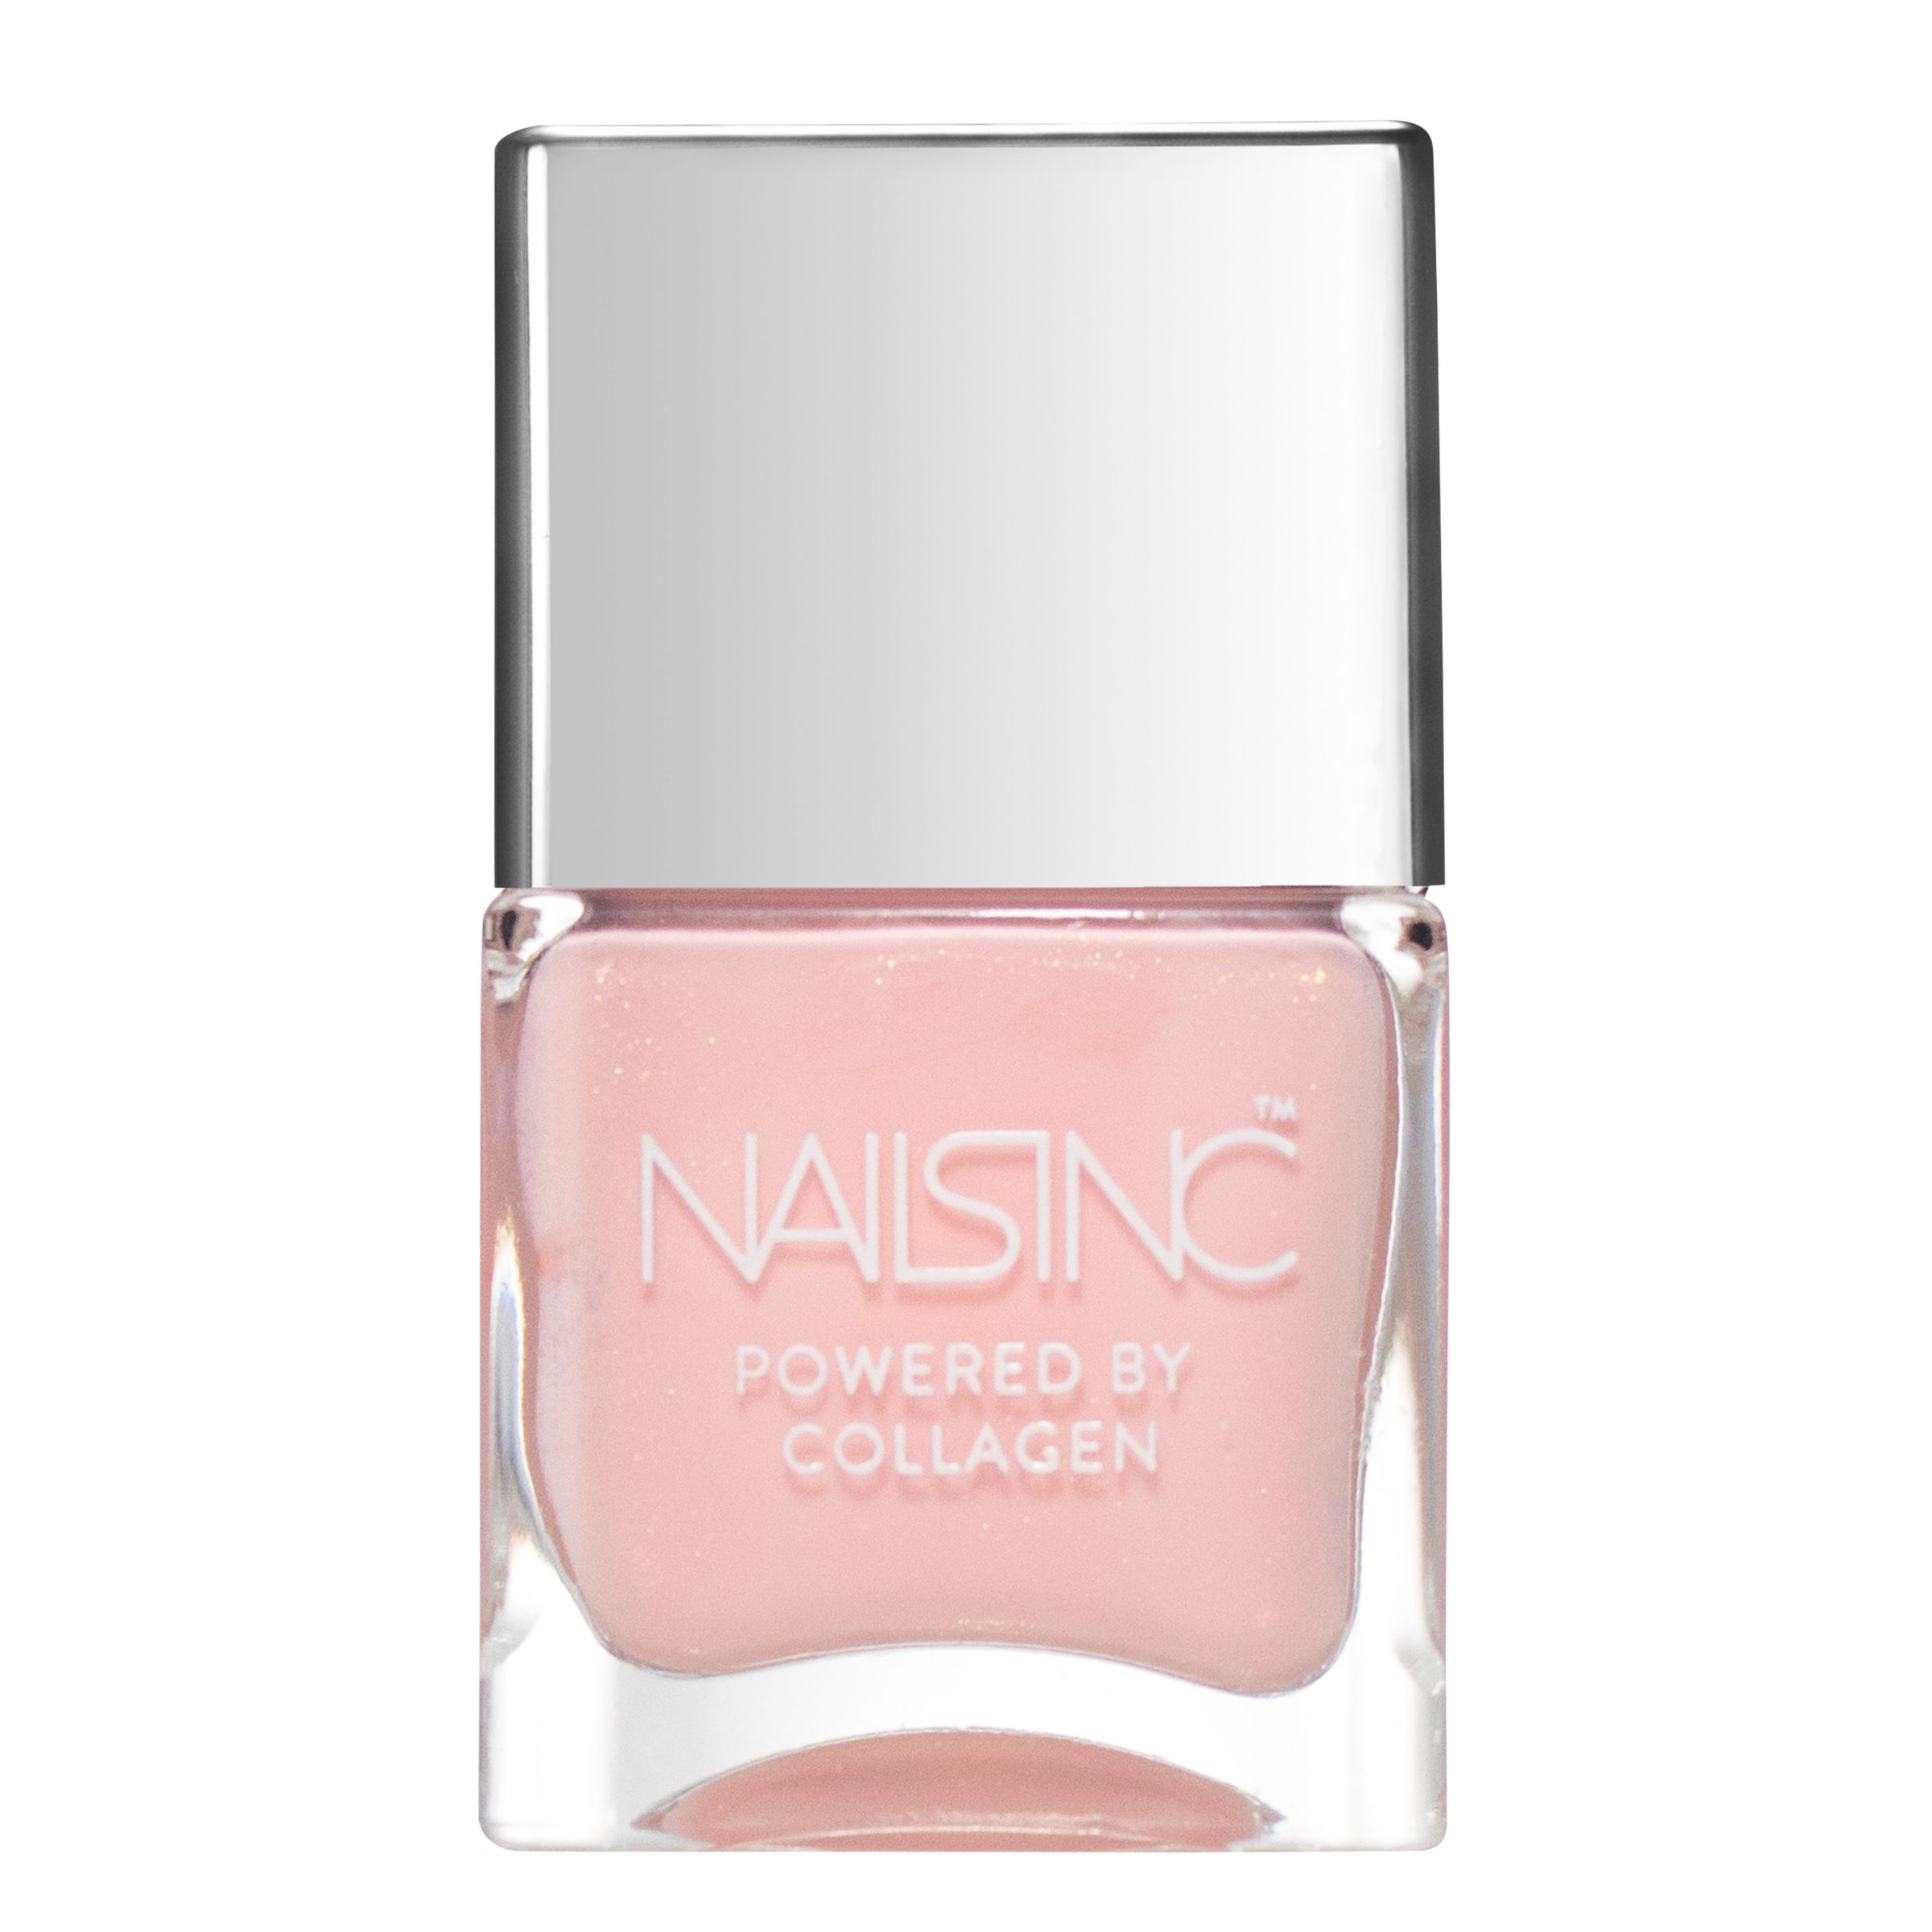 Nails Inc Nails Inc Powered By Collagen Conceal And Reveal Nail Polish, 14ml